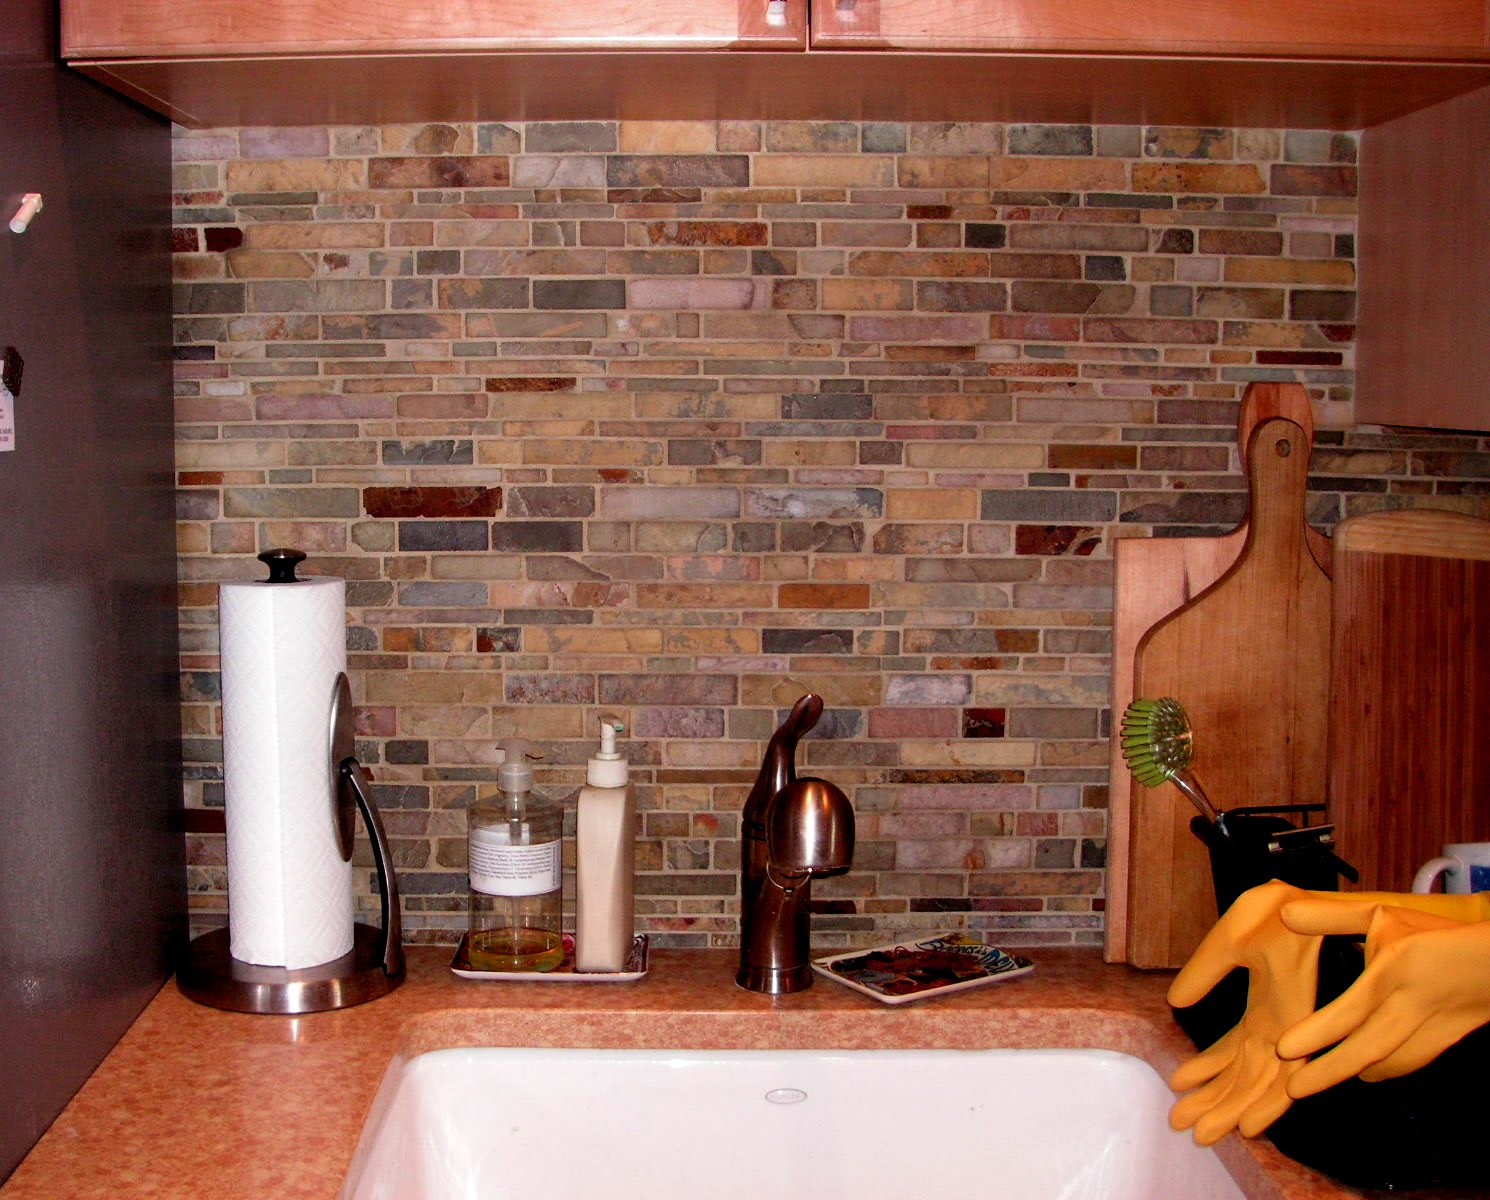 Colorful Slate Tile Backsplash for Kitchen